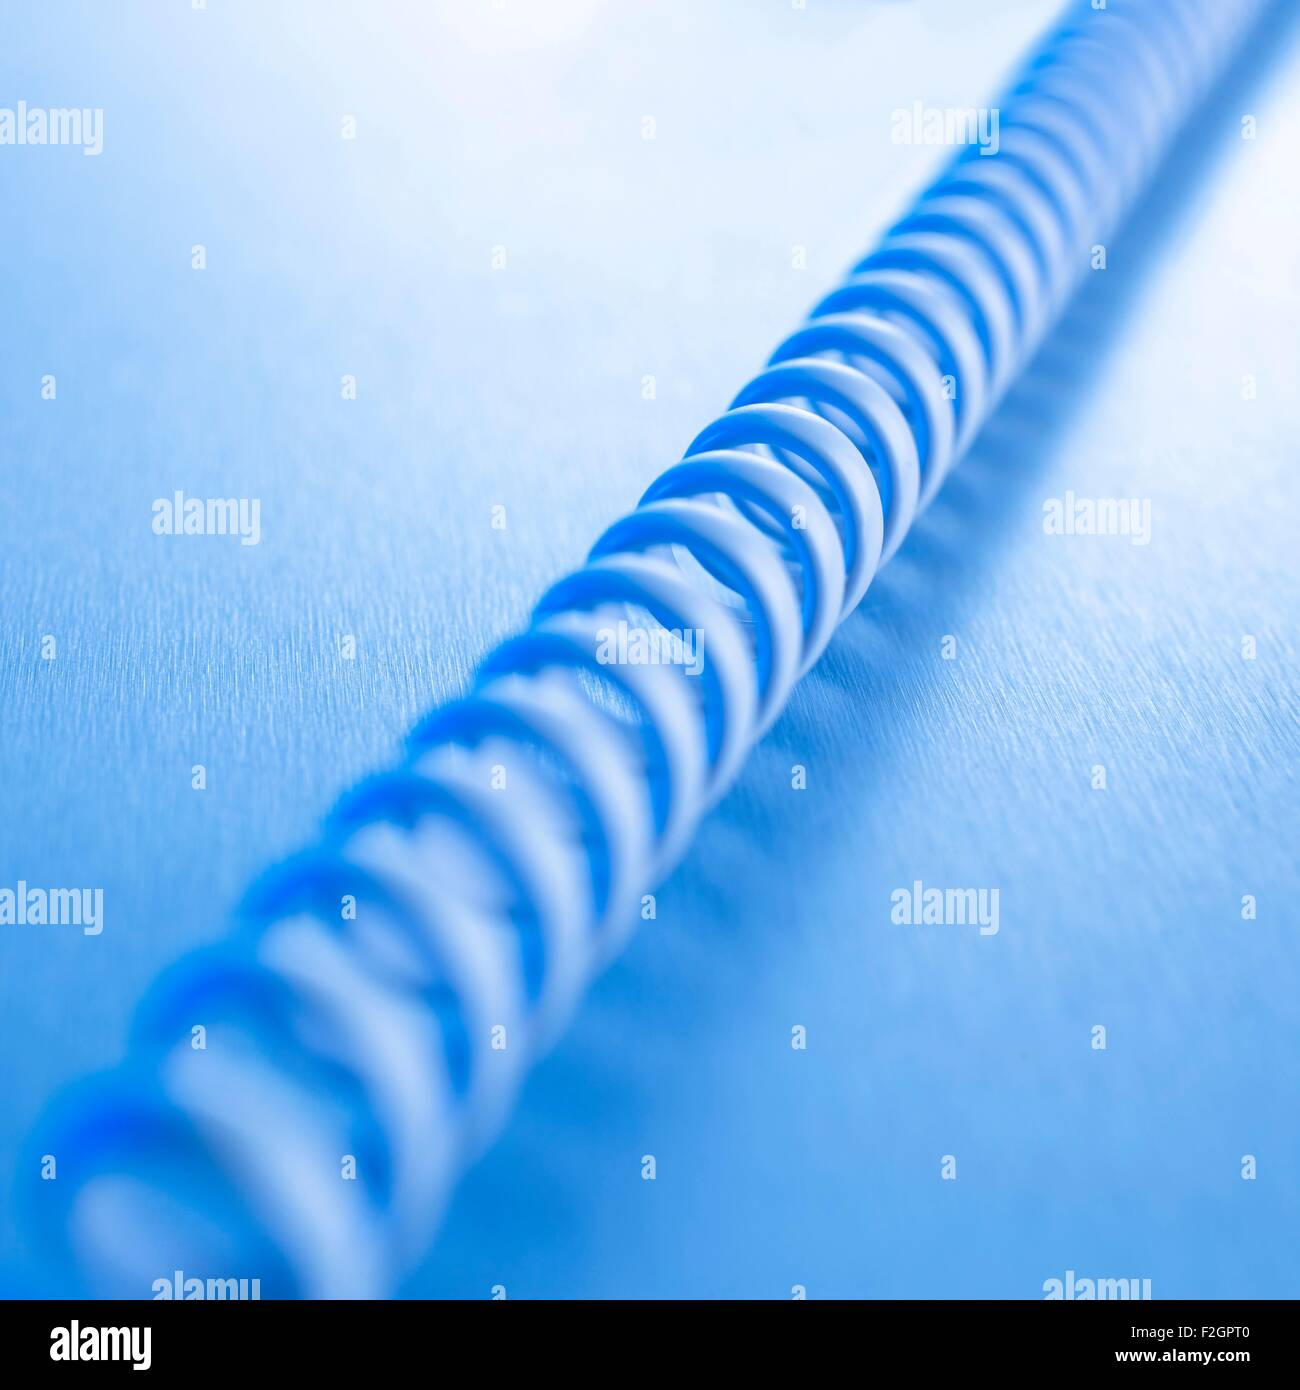 Telephone cord - Stock Image